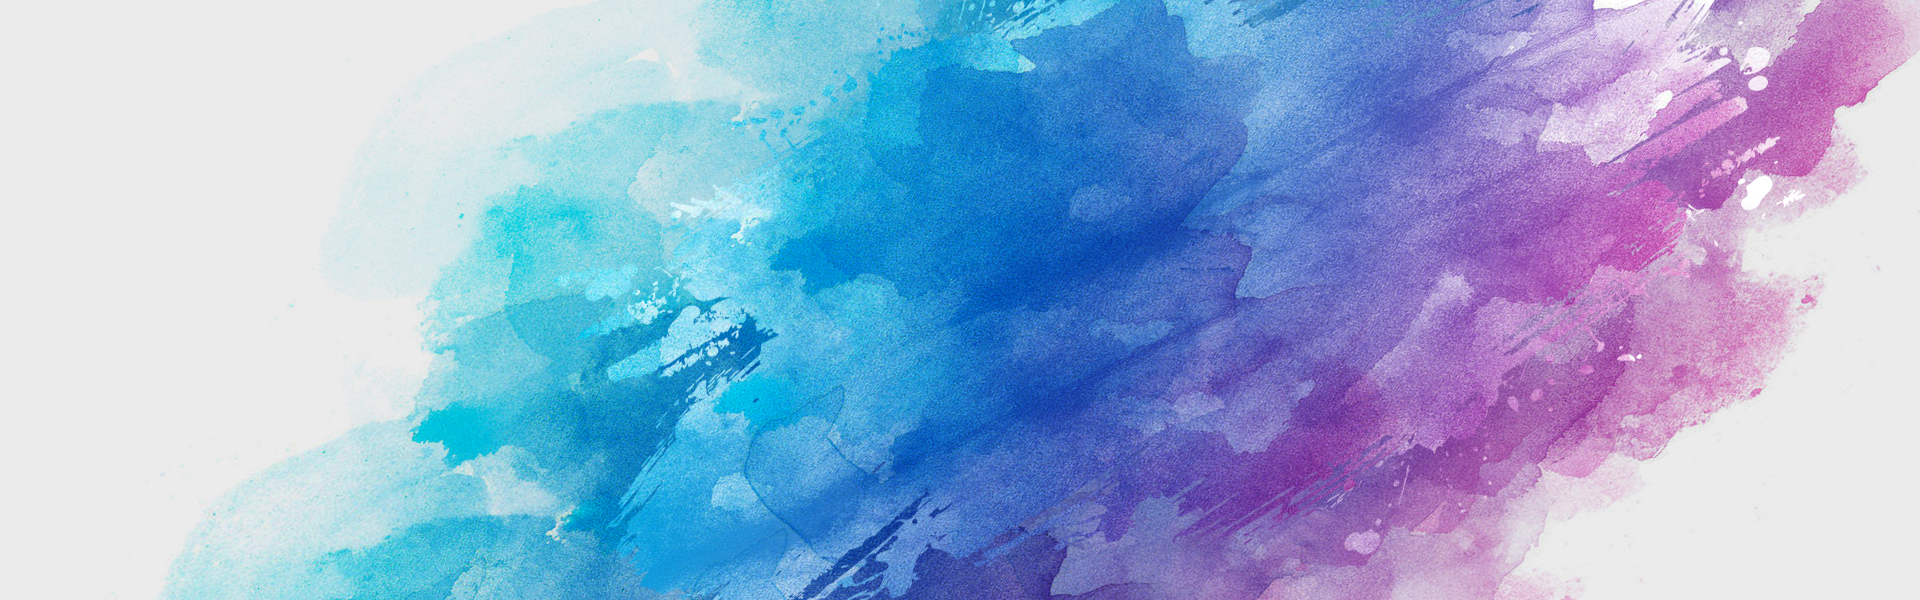 Background Color, Web, Ink, Watercolor Background Image